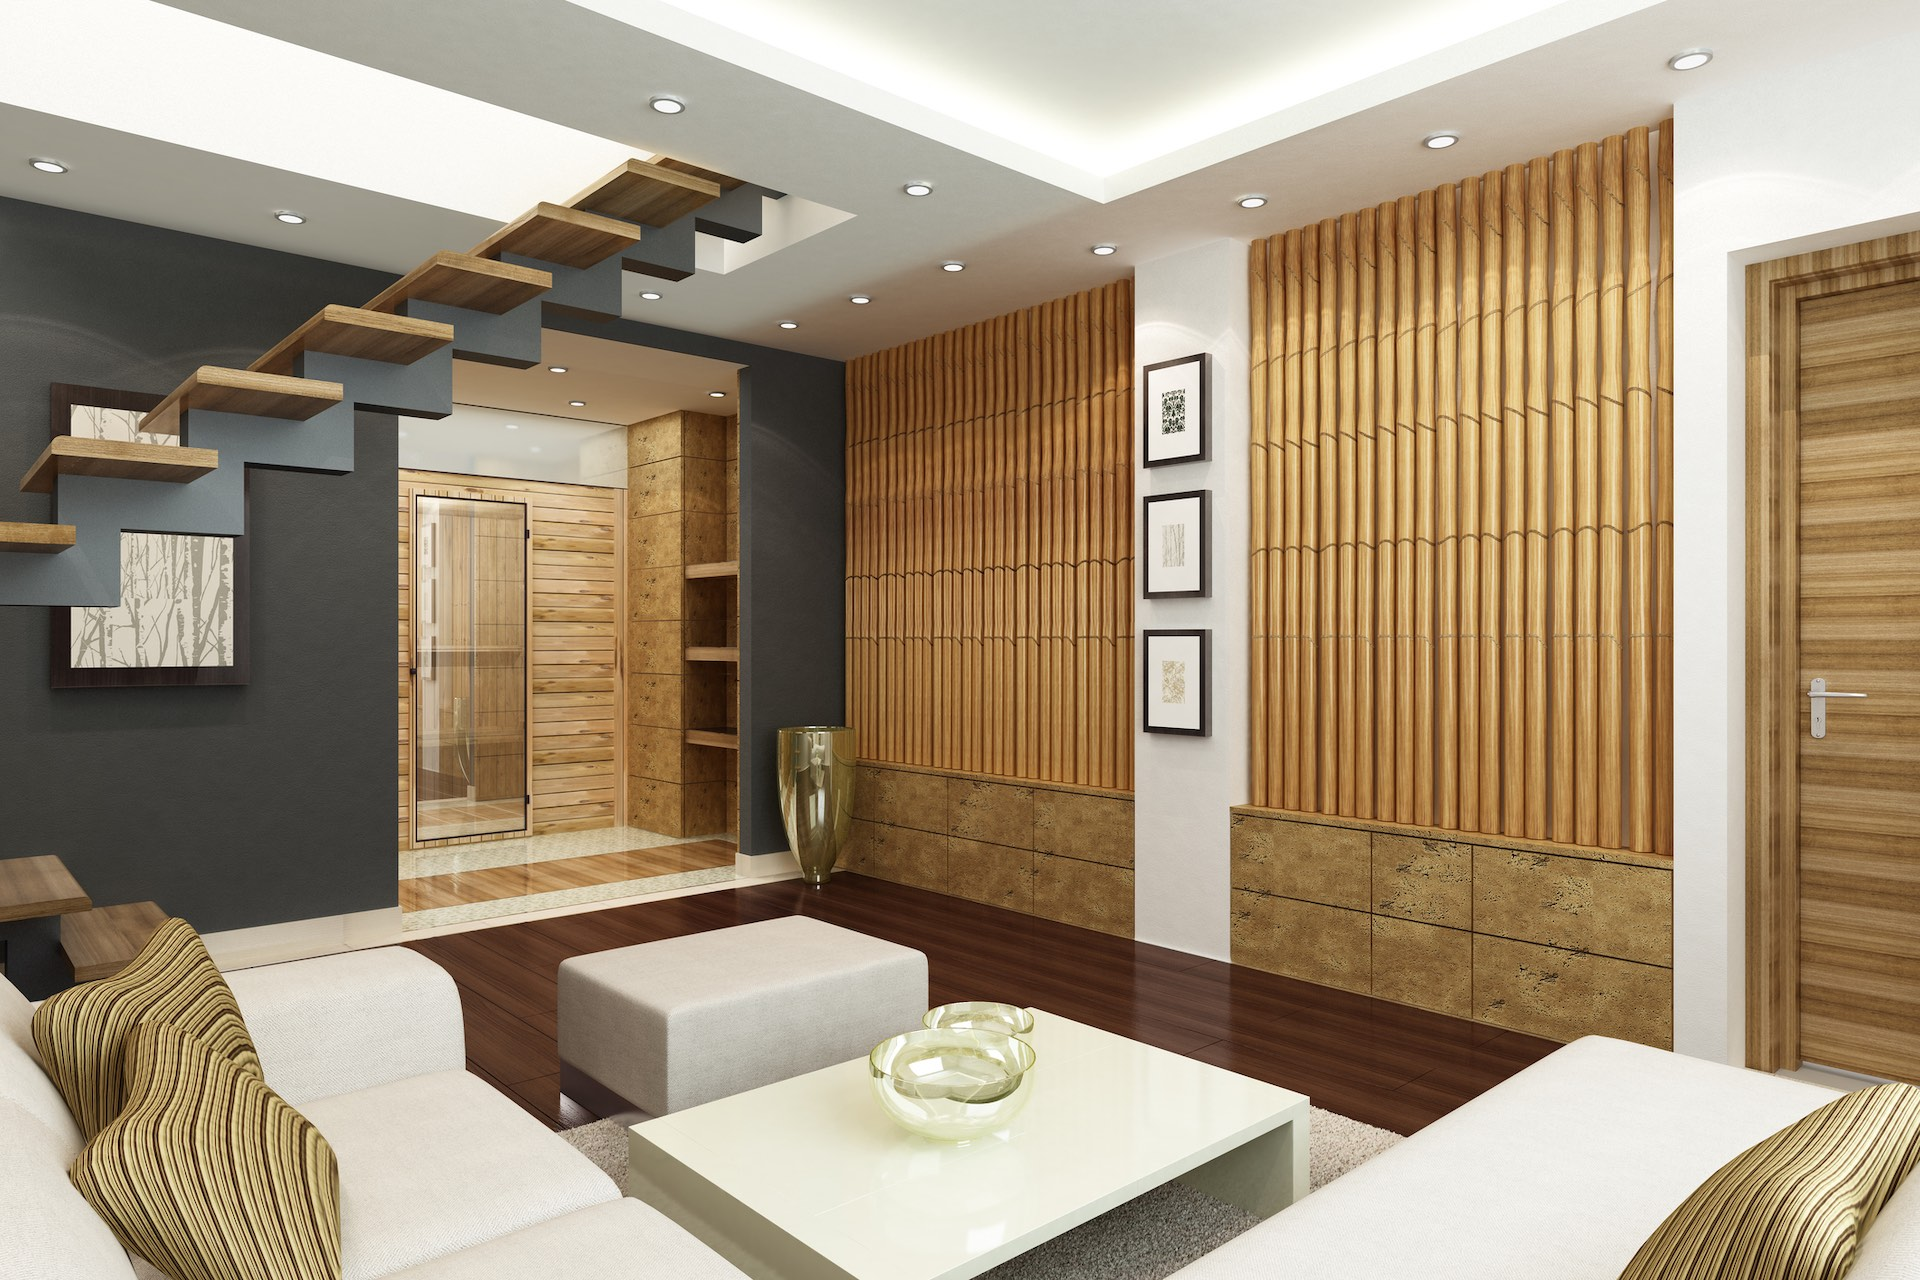 Bamboo in the form of a feature wall and sketch portrait used as decor in a living room